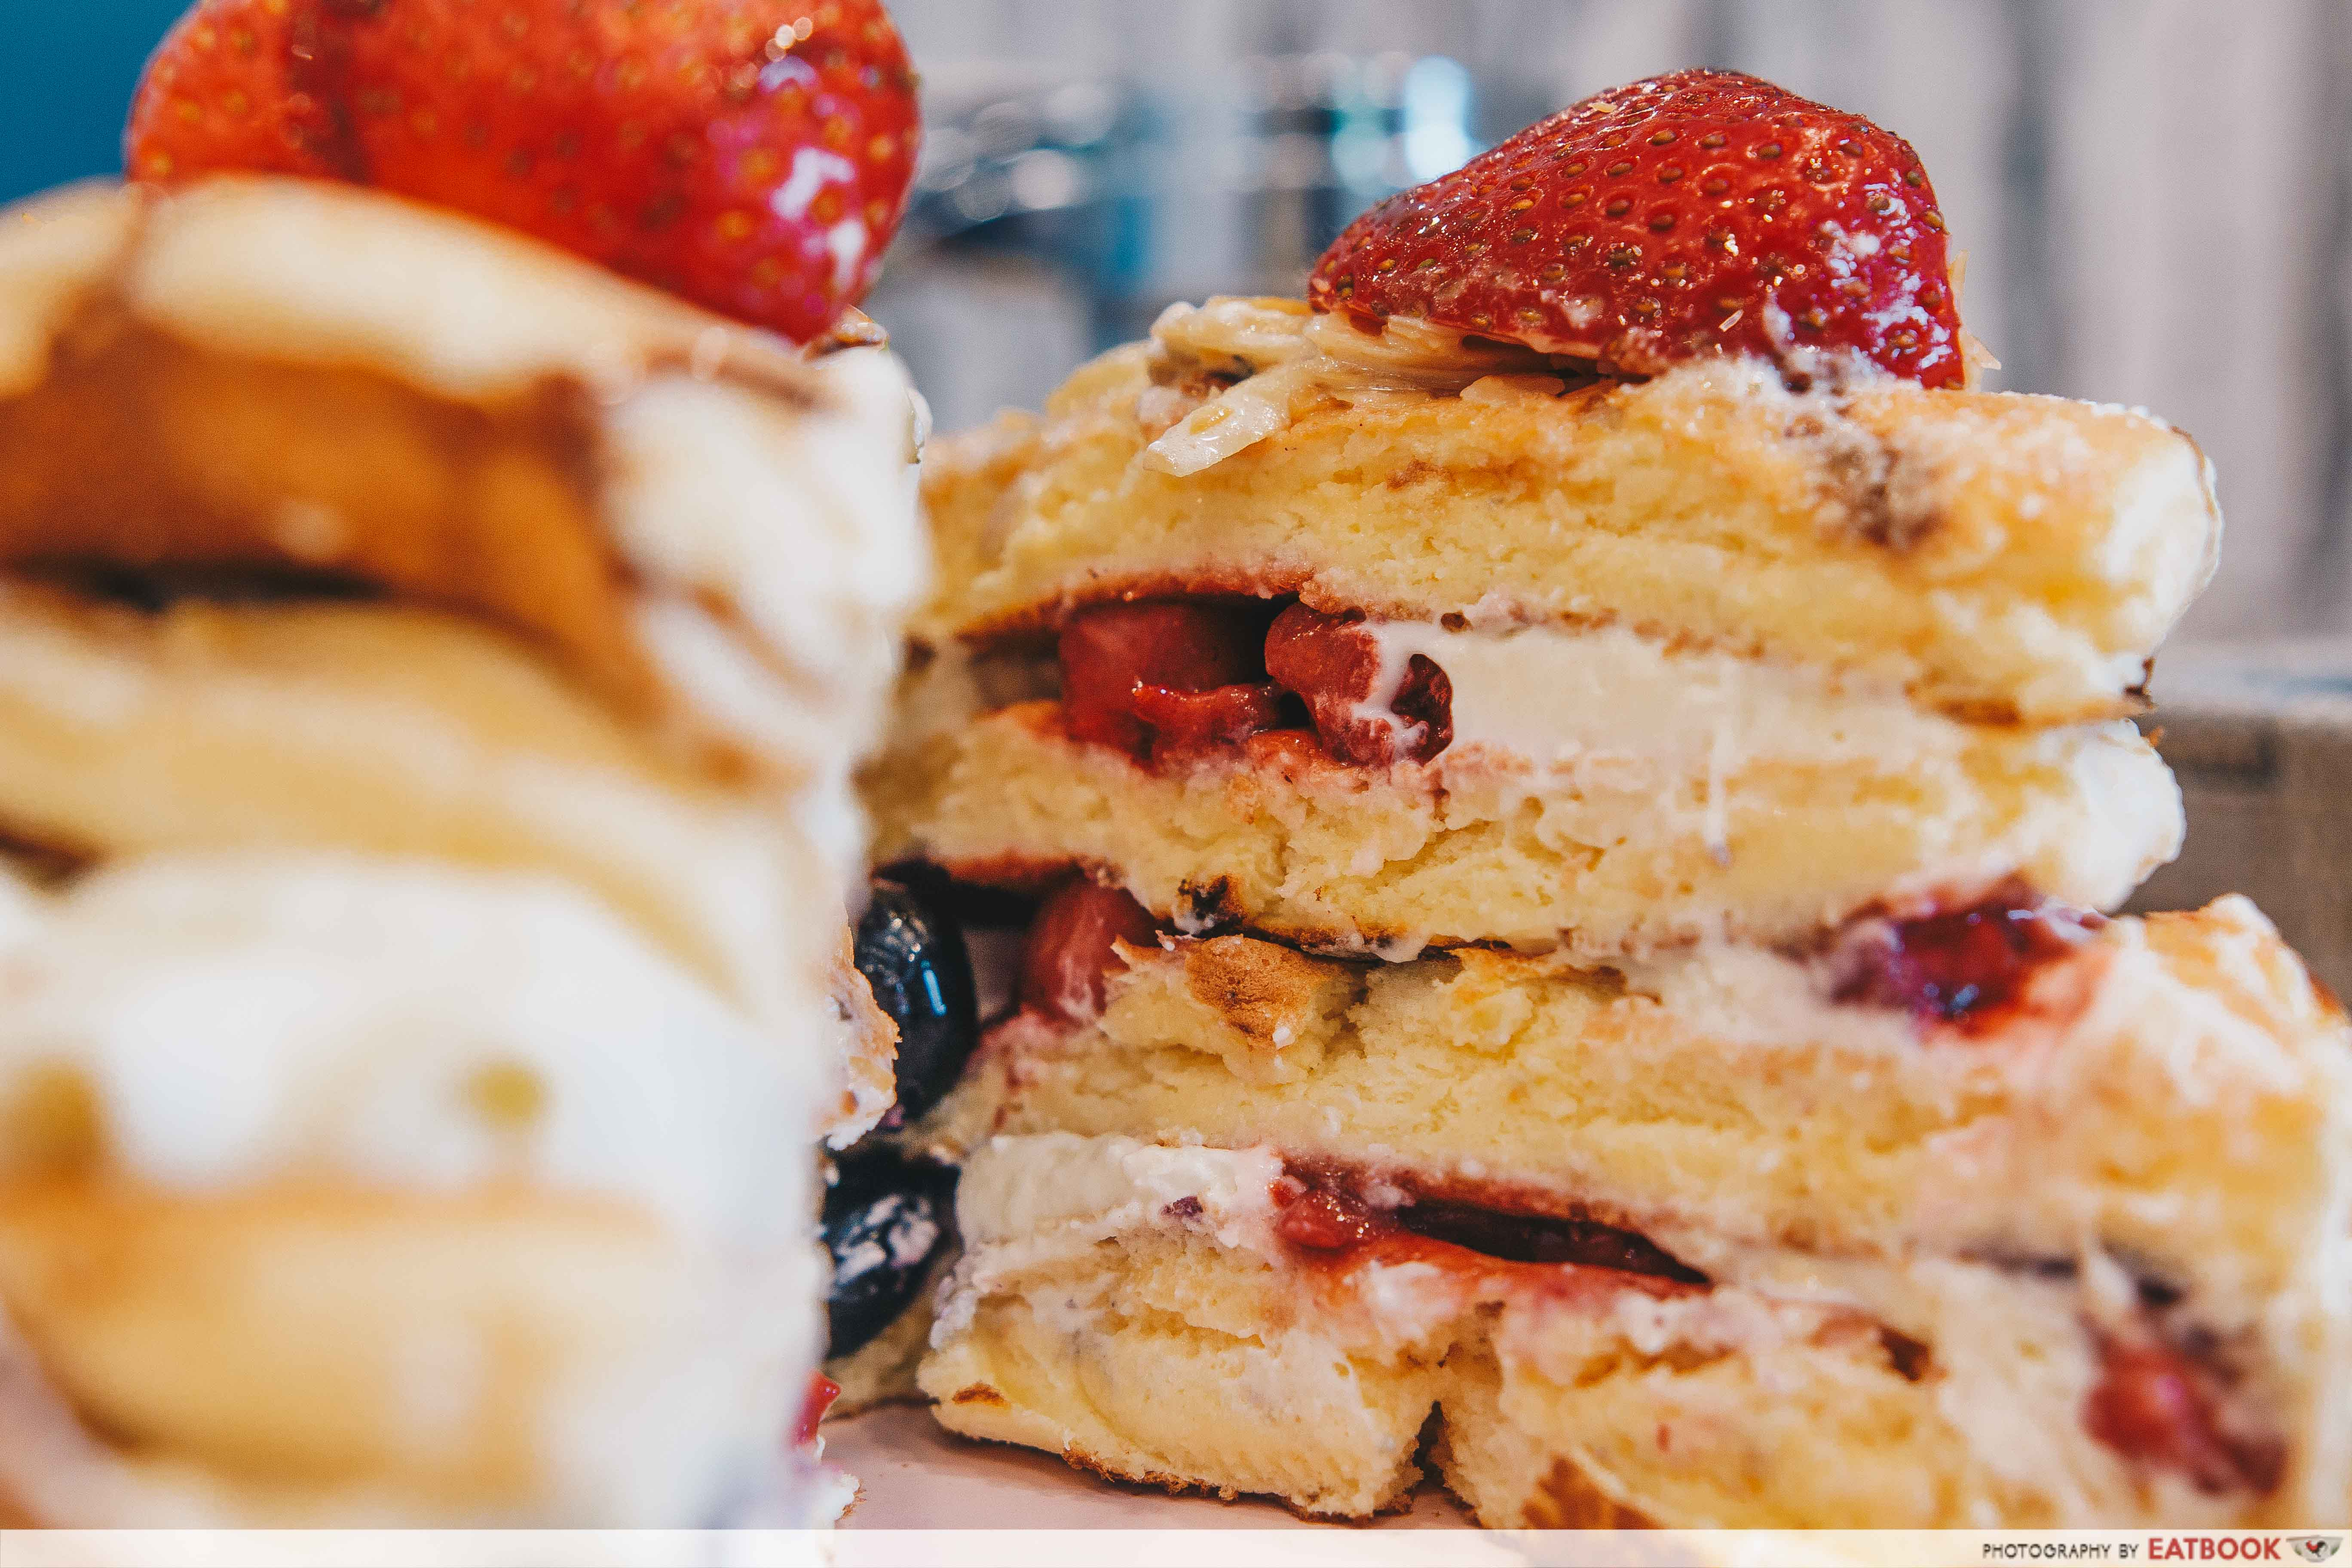 Belle-Ville - cross-section of Strawberry and Mixed Berry Pancake